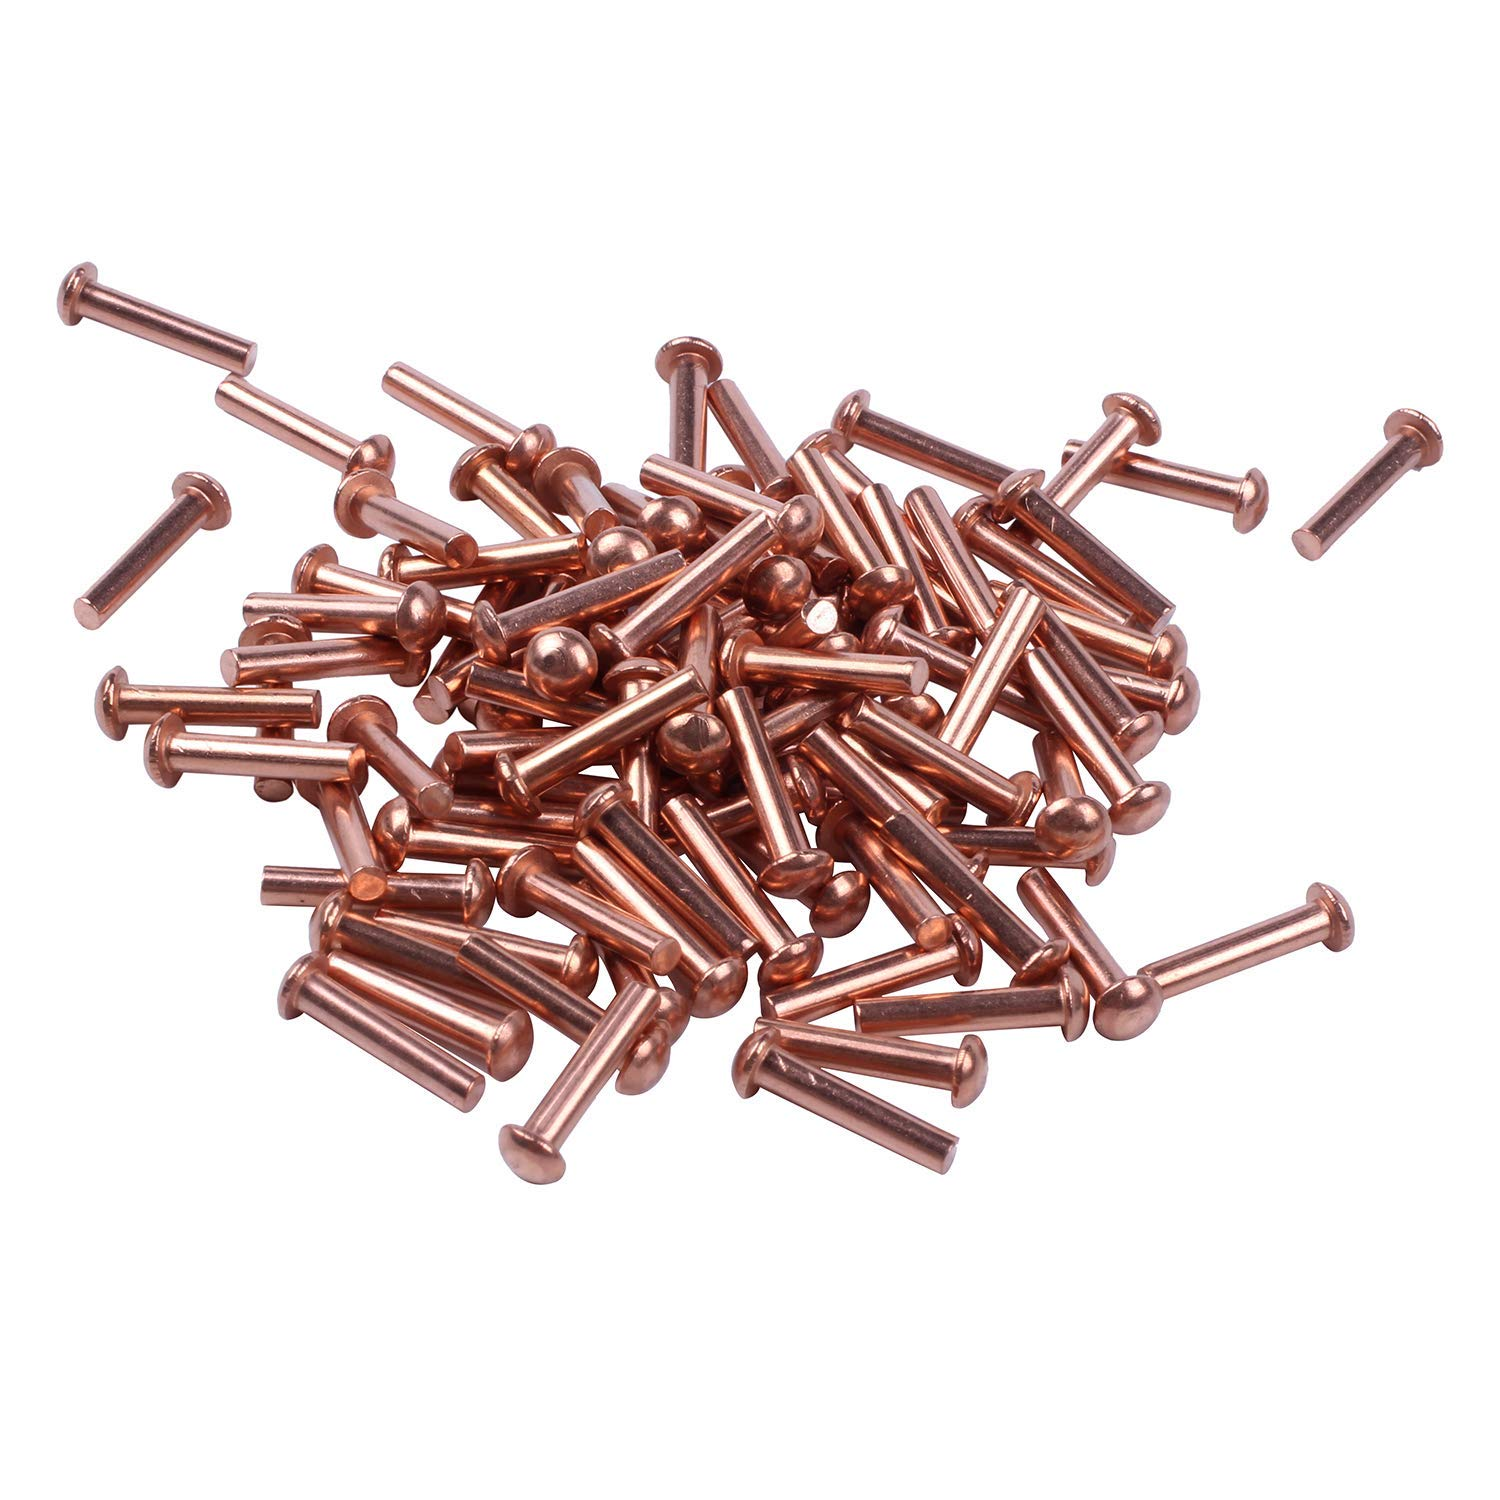 TOOGOO(R) 100 Pcs 3/32x15/32 inch Round Head Copper Solid Rivets Fasteners Rose gold